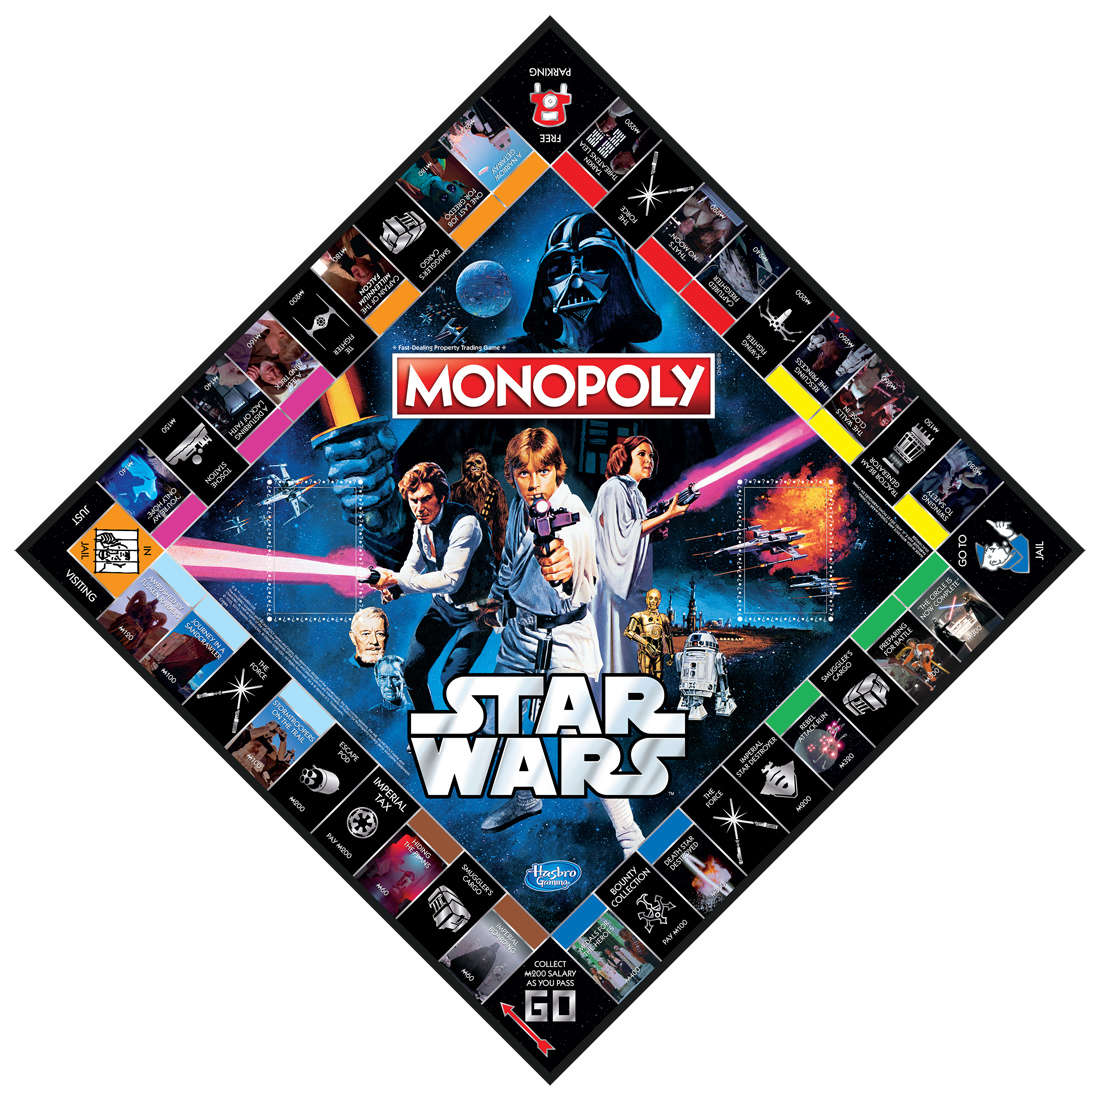 Star-Wars-Monopoly-40th-Anniversary-Edition-open